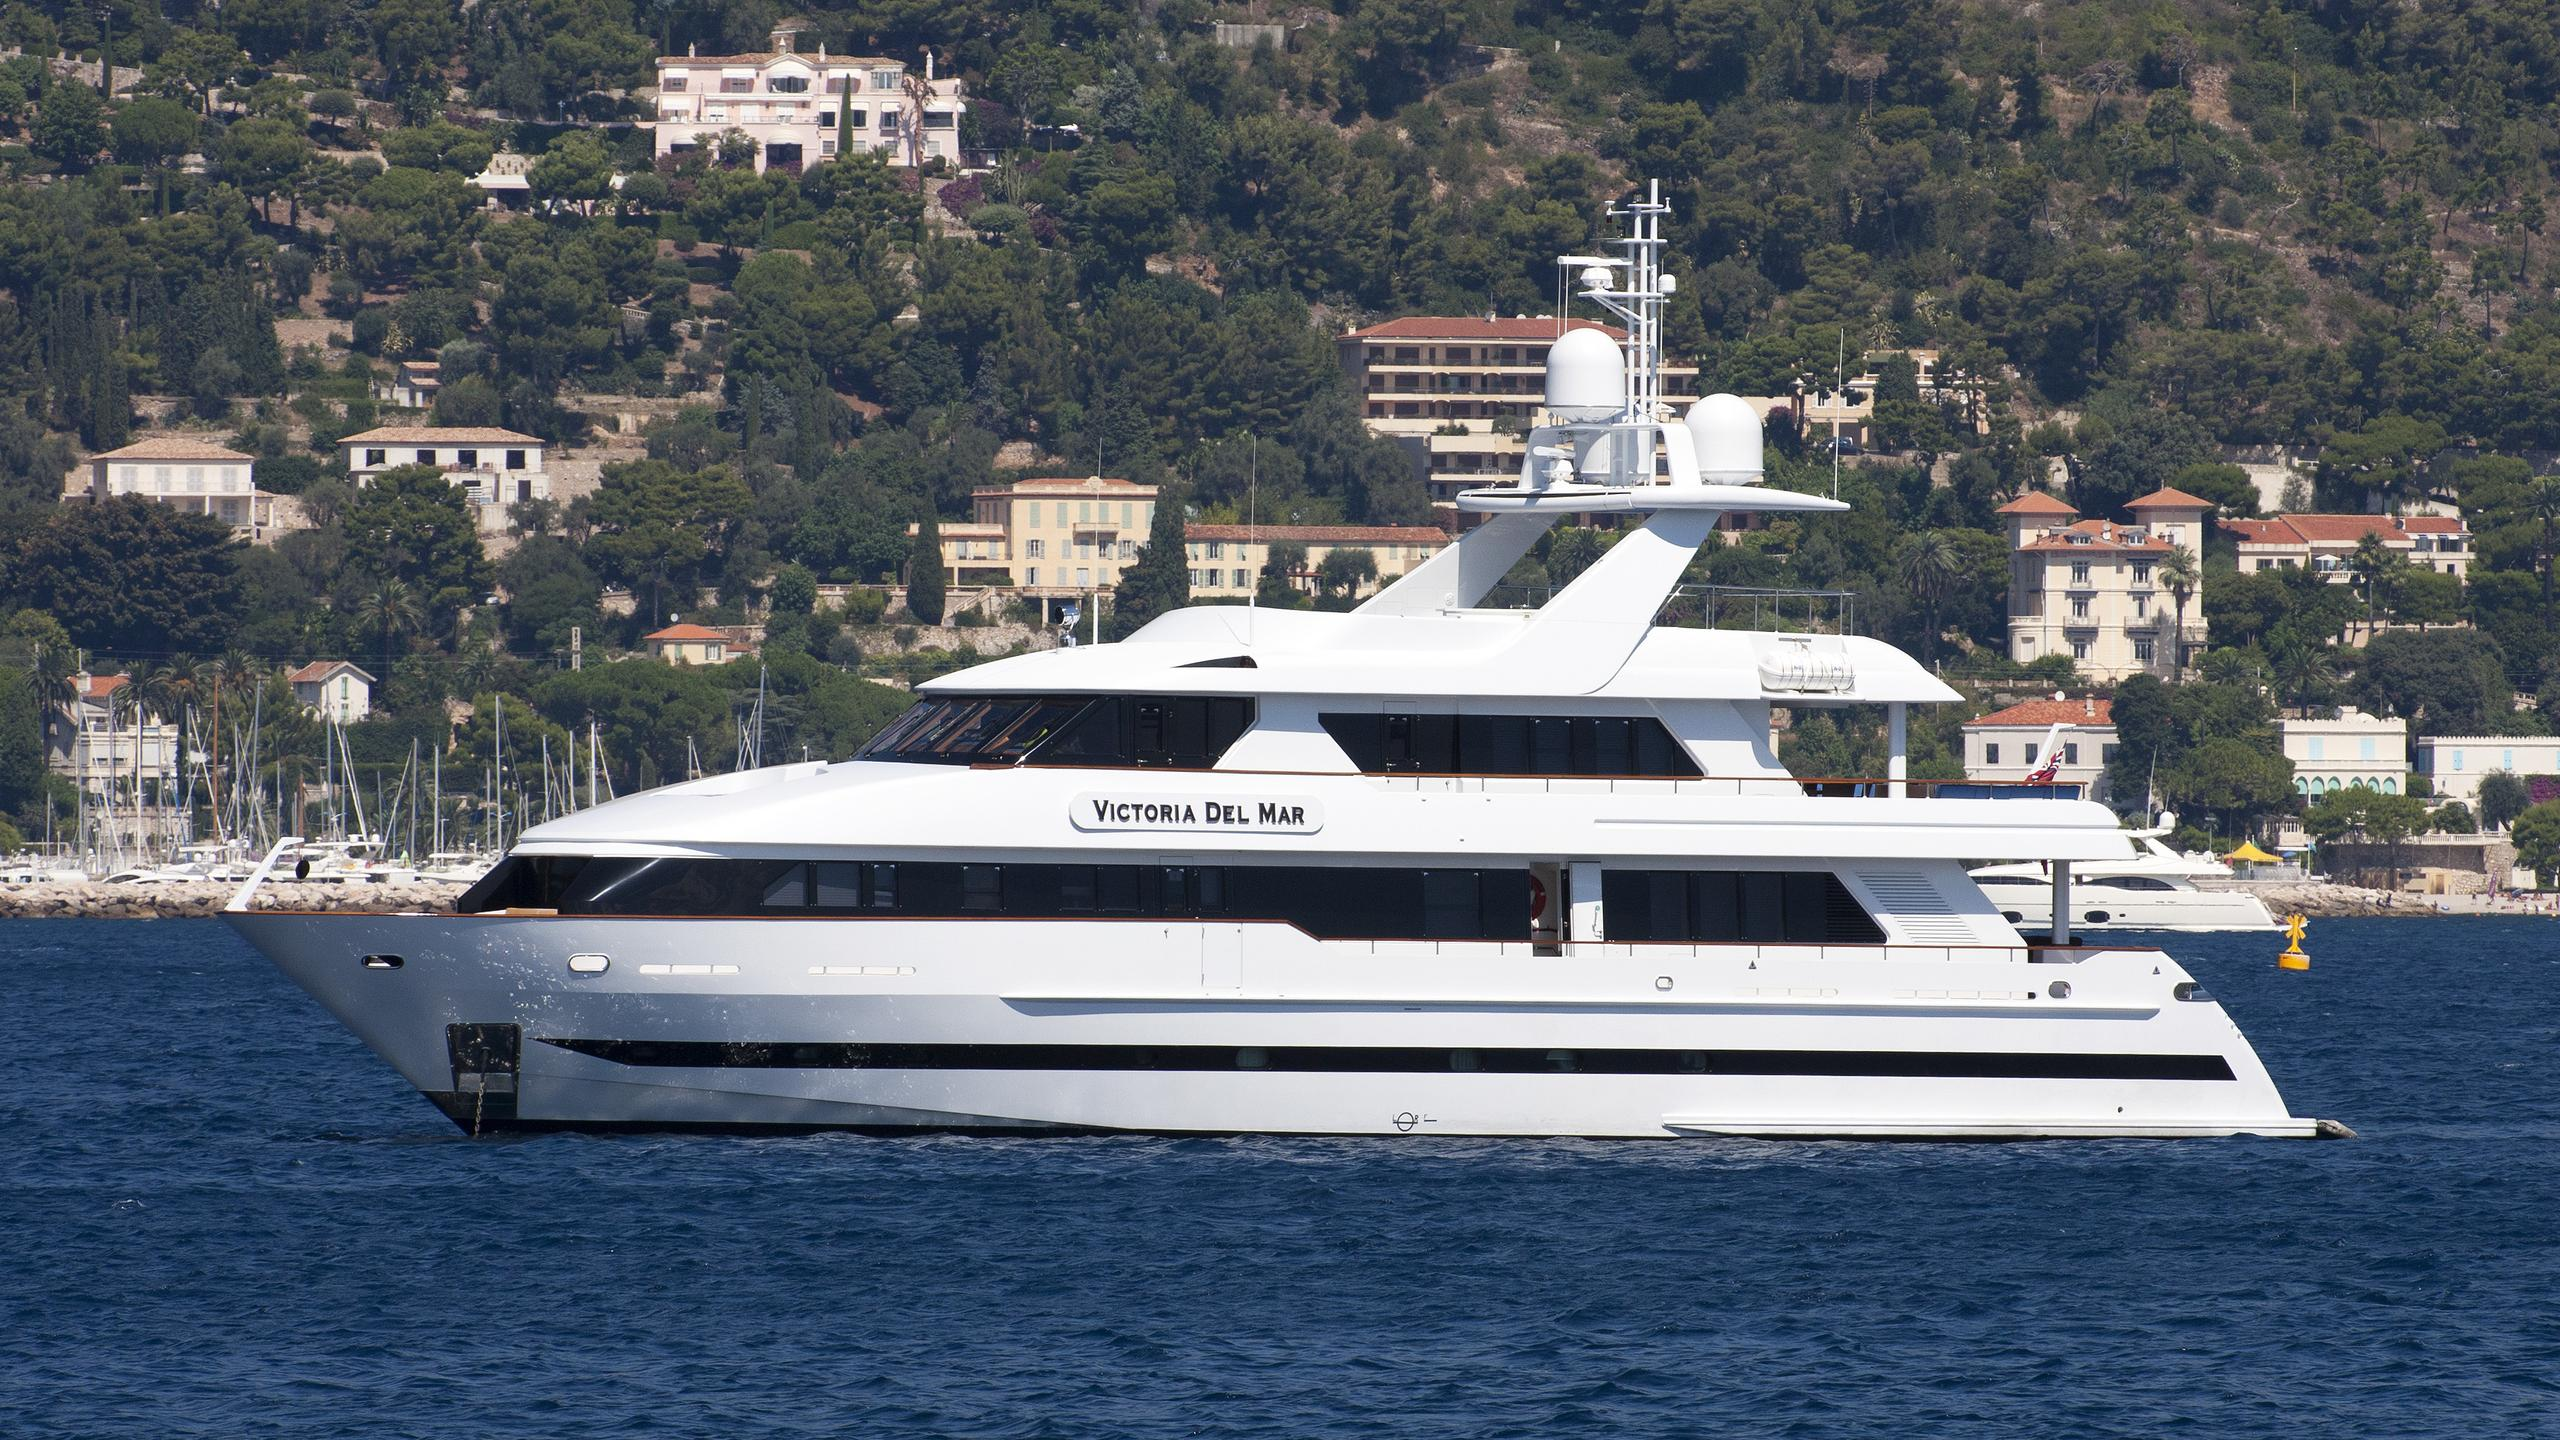 castellina virginia victoria del mar motoryacht moonen 120 2001 37m profile